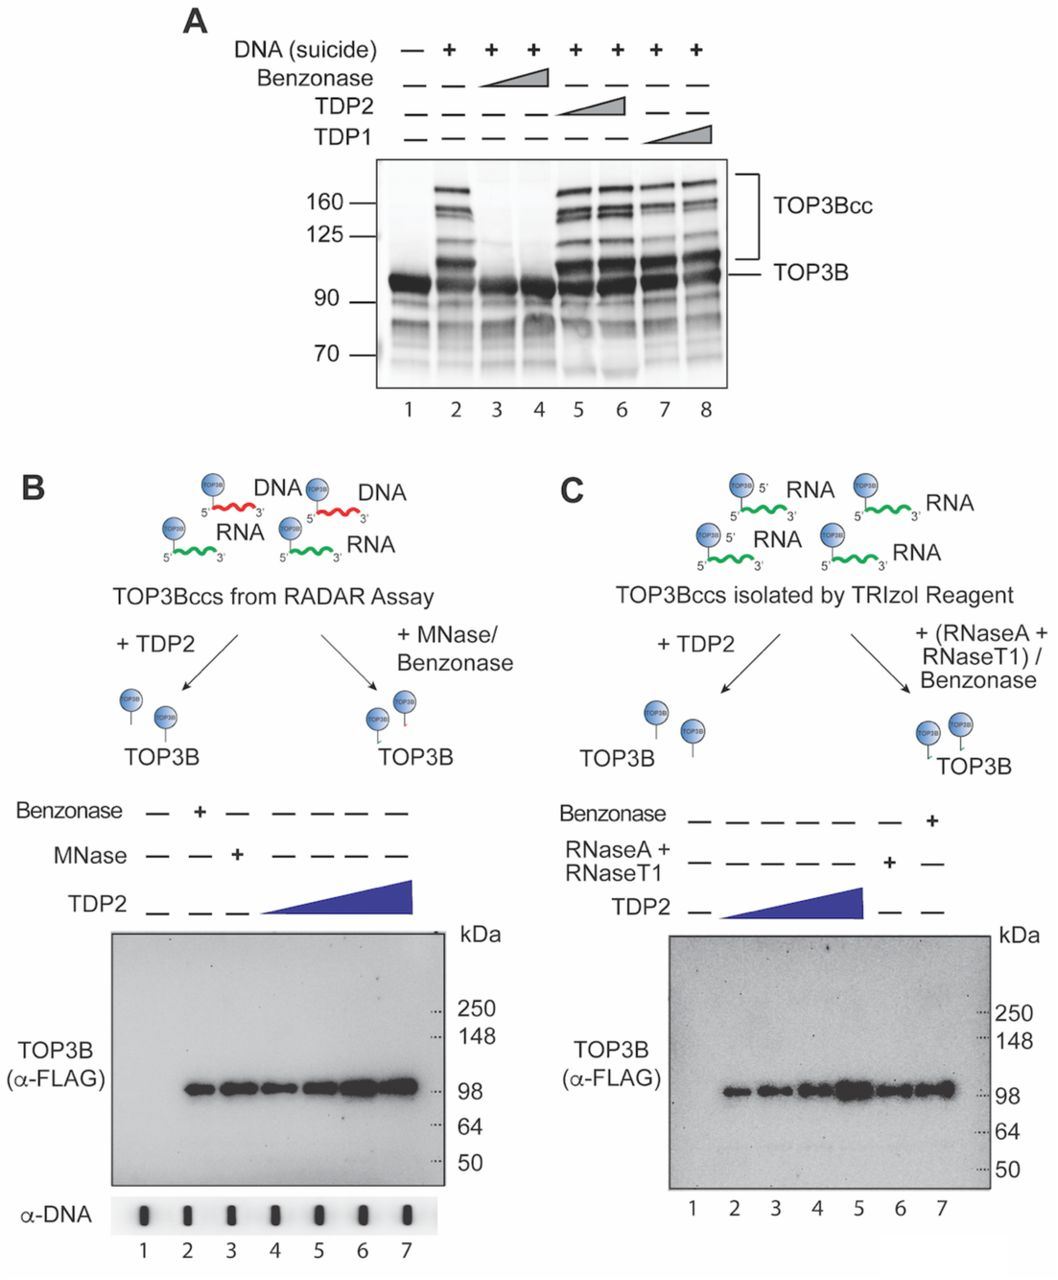 Recombinant Human TDP2 Only Unhooks Denatured but Not Native TOP3B from TOP3Bcc (A) Recombinant human TDP2 does not excise native TOP3Bccs. A 69-mer single-stranded DNA oligonucleotide was designed to study the processing of suicidal TOP3Bccs by TDP2. The oligonucleotide (300 nM)was incubated with purified recombinant human TOP3B (4 uM). Irreversible (suicidal) TOP3Bccs result in slower migrating DNA (Lane 2). Positions of free TOP3B and TOP3Bccs are indicated. Suicidal TOP3Bccs were incubated with increasing concentration (1 or 3 μM) of recombinant TDP1 (Lanes 7 and 8) or TDP2 (1 or 3 μM, Lanes 5 and 6). Benzonase (3 or 9 Units, Lanes 3 and 4) was used as positive control for degradation of the oligonucleotide and release of TOP3B. Samples were resolved by SDS-PAGE and immunoblotted with anti-TOP3B antibody. (B-C) Recombinant human TDP2 excises denatured cellular DNA and RNA TOP3Bccs. (B) HEK293 cells were transfected with FLAG-tagged R338W TOP3B and nucleic acids and protein-nucleic acid adducts were recovered by RADAR assay. After incubation with increasing concentrations of recombinant TDP2 (1, 2, 3 and 6 μM, lanes 4-7), micrococcal nuclease (MNase, 300 Units/reaction, lane 3) or benzonase (250 Units/reaction, lane 2), reaction mixtures were analyzed by immunoblotting with anti-FLAG antibody after SDS-PAGE. Benzonase and MNase were used as controls for complete degradation of DNA and RNA in TOP3Bccs. (C) HEK293 cells were transfected with R338W TOP3B. Covalent protein-RNA adducts were isolated 72 hs later using TRIzol® reagent. After incubation with increasing concentrations of recombinant TDP2 (1, 2, 3 and 6 μM, lanes 2-5), excess amount of RNase A (200 μg/mL) and RNase T1 (200 Units/ml) mix (Lane 6) or benzonase (250 Units/ reaction, lane 7), reaction mixtures were analyzed by immunoblotting with anti-FLAG antibody after SDS-PAGE. Benzonase and RNase A and RNase T1 mix were used as controls for complete degradation of RNA covalently attached to TOP3Bccs.